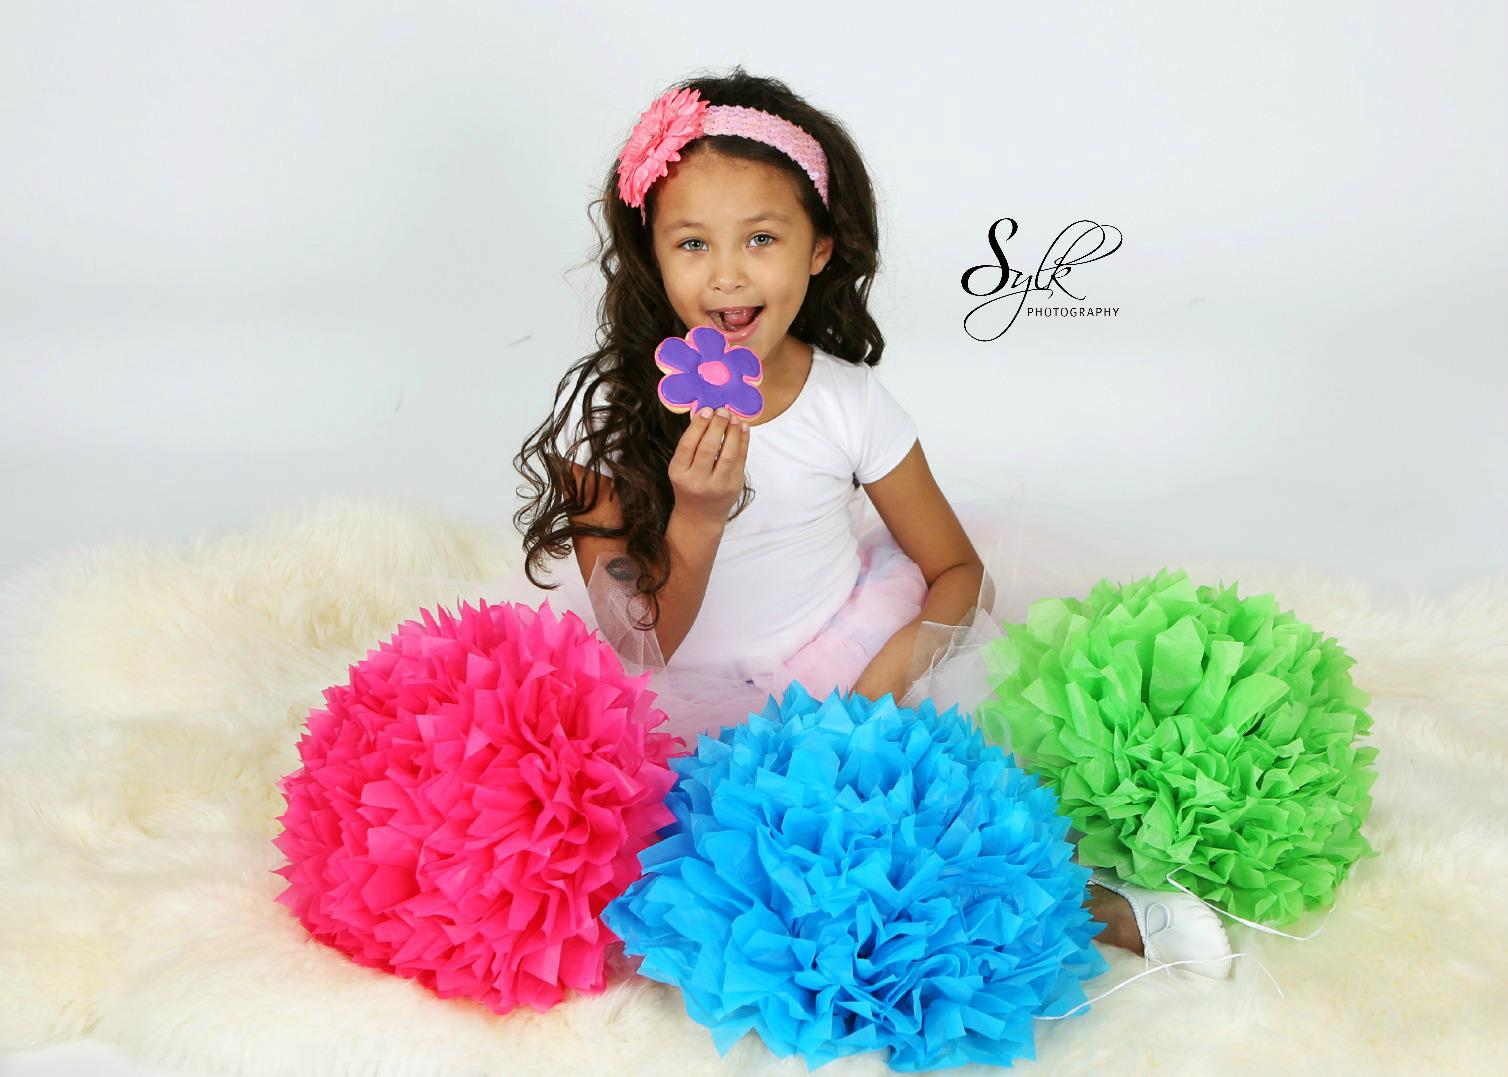 Soft & Colorful Tutu set $25